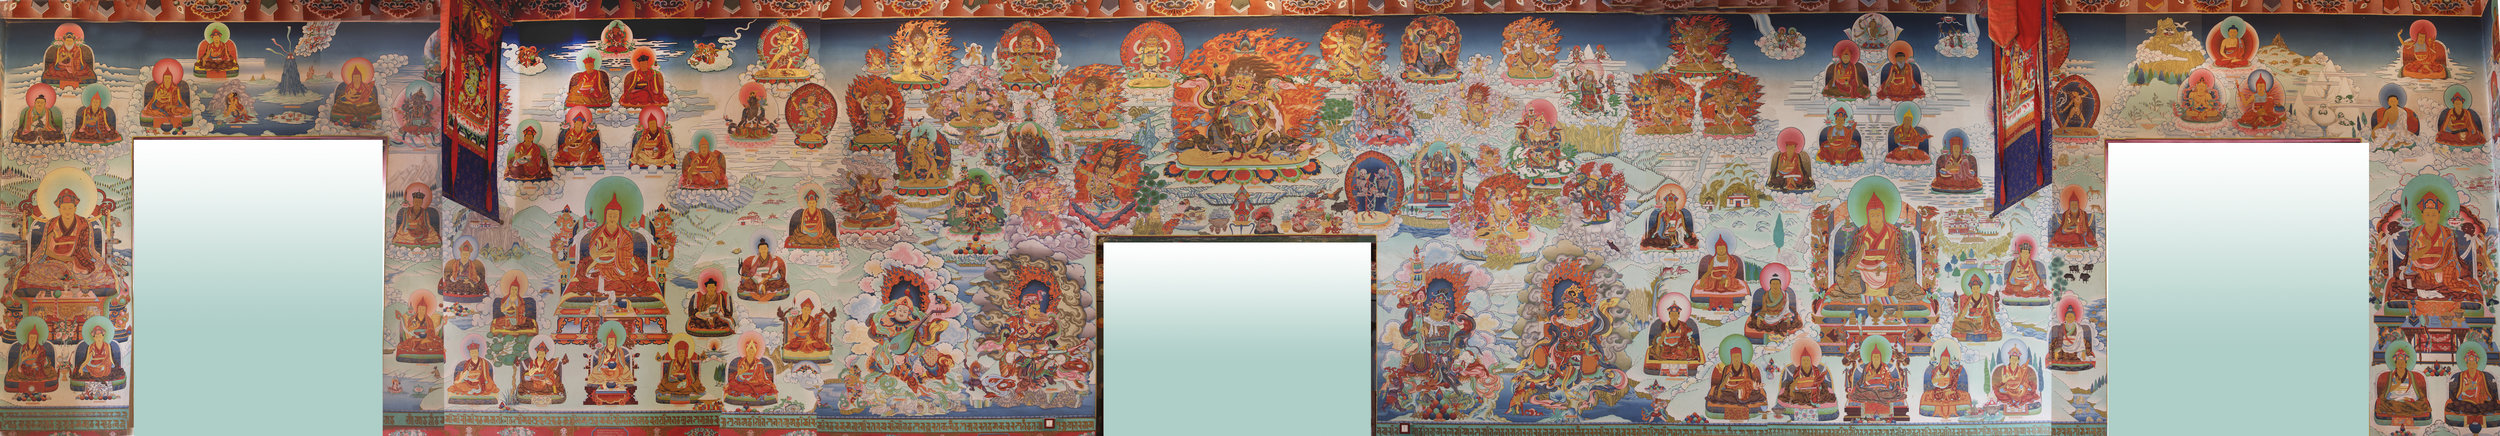 This wall has the most figures. Central figures include Shechen Gyaltsab Gyurme Namgyal (the teacher of Dilgo Khyentse Rinpoche), Jamgon Kongtrul Lodro Thaye, Jamyang Khyentse Wangpo, Gonpo Lhekden, and 2nd Rabjam Gyurme Kunzang Namgyal. Smaller figures include the 10th Trungpa Rinpoche, Situ Pema Wangchuk, 3rd Dodrup Chen Jigme Tenpei Nyima, Mipham Jamyang Gyalso, and Togden Shakya Shri.  The Four Kings will be painted above the main door of the temple and figures from Khyentse Rinpoche's treasure teachings (terma) will replace them on the East Wall.